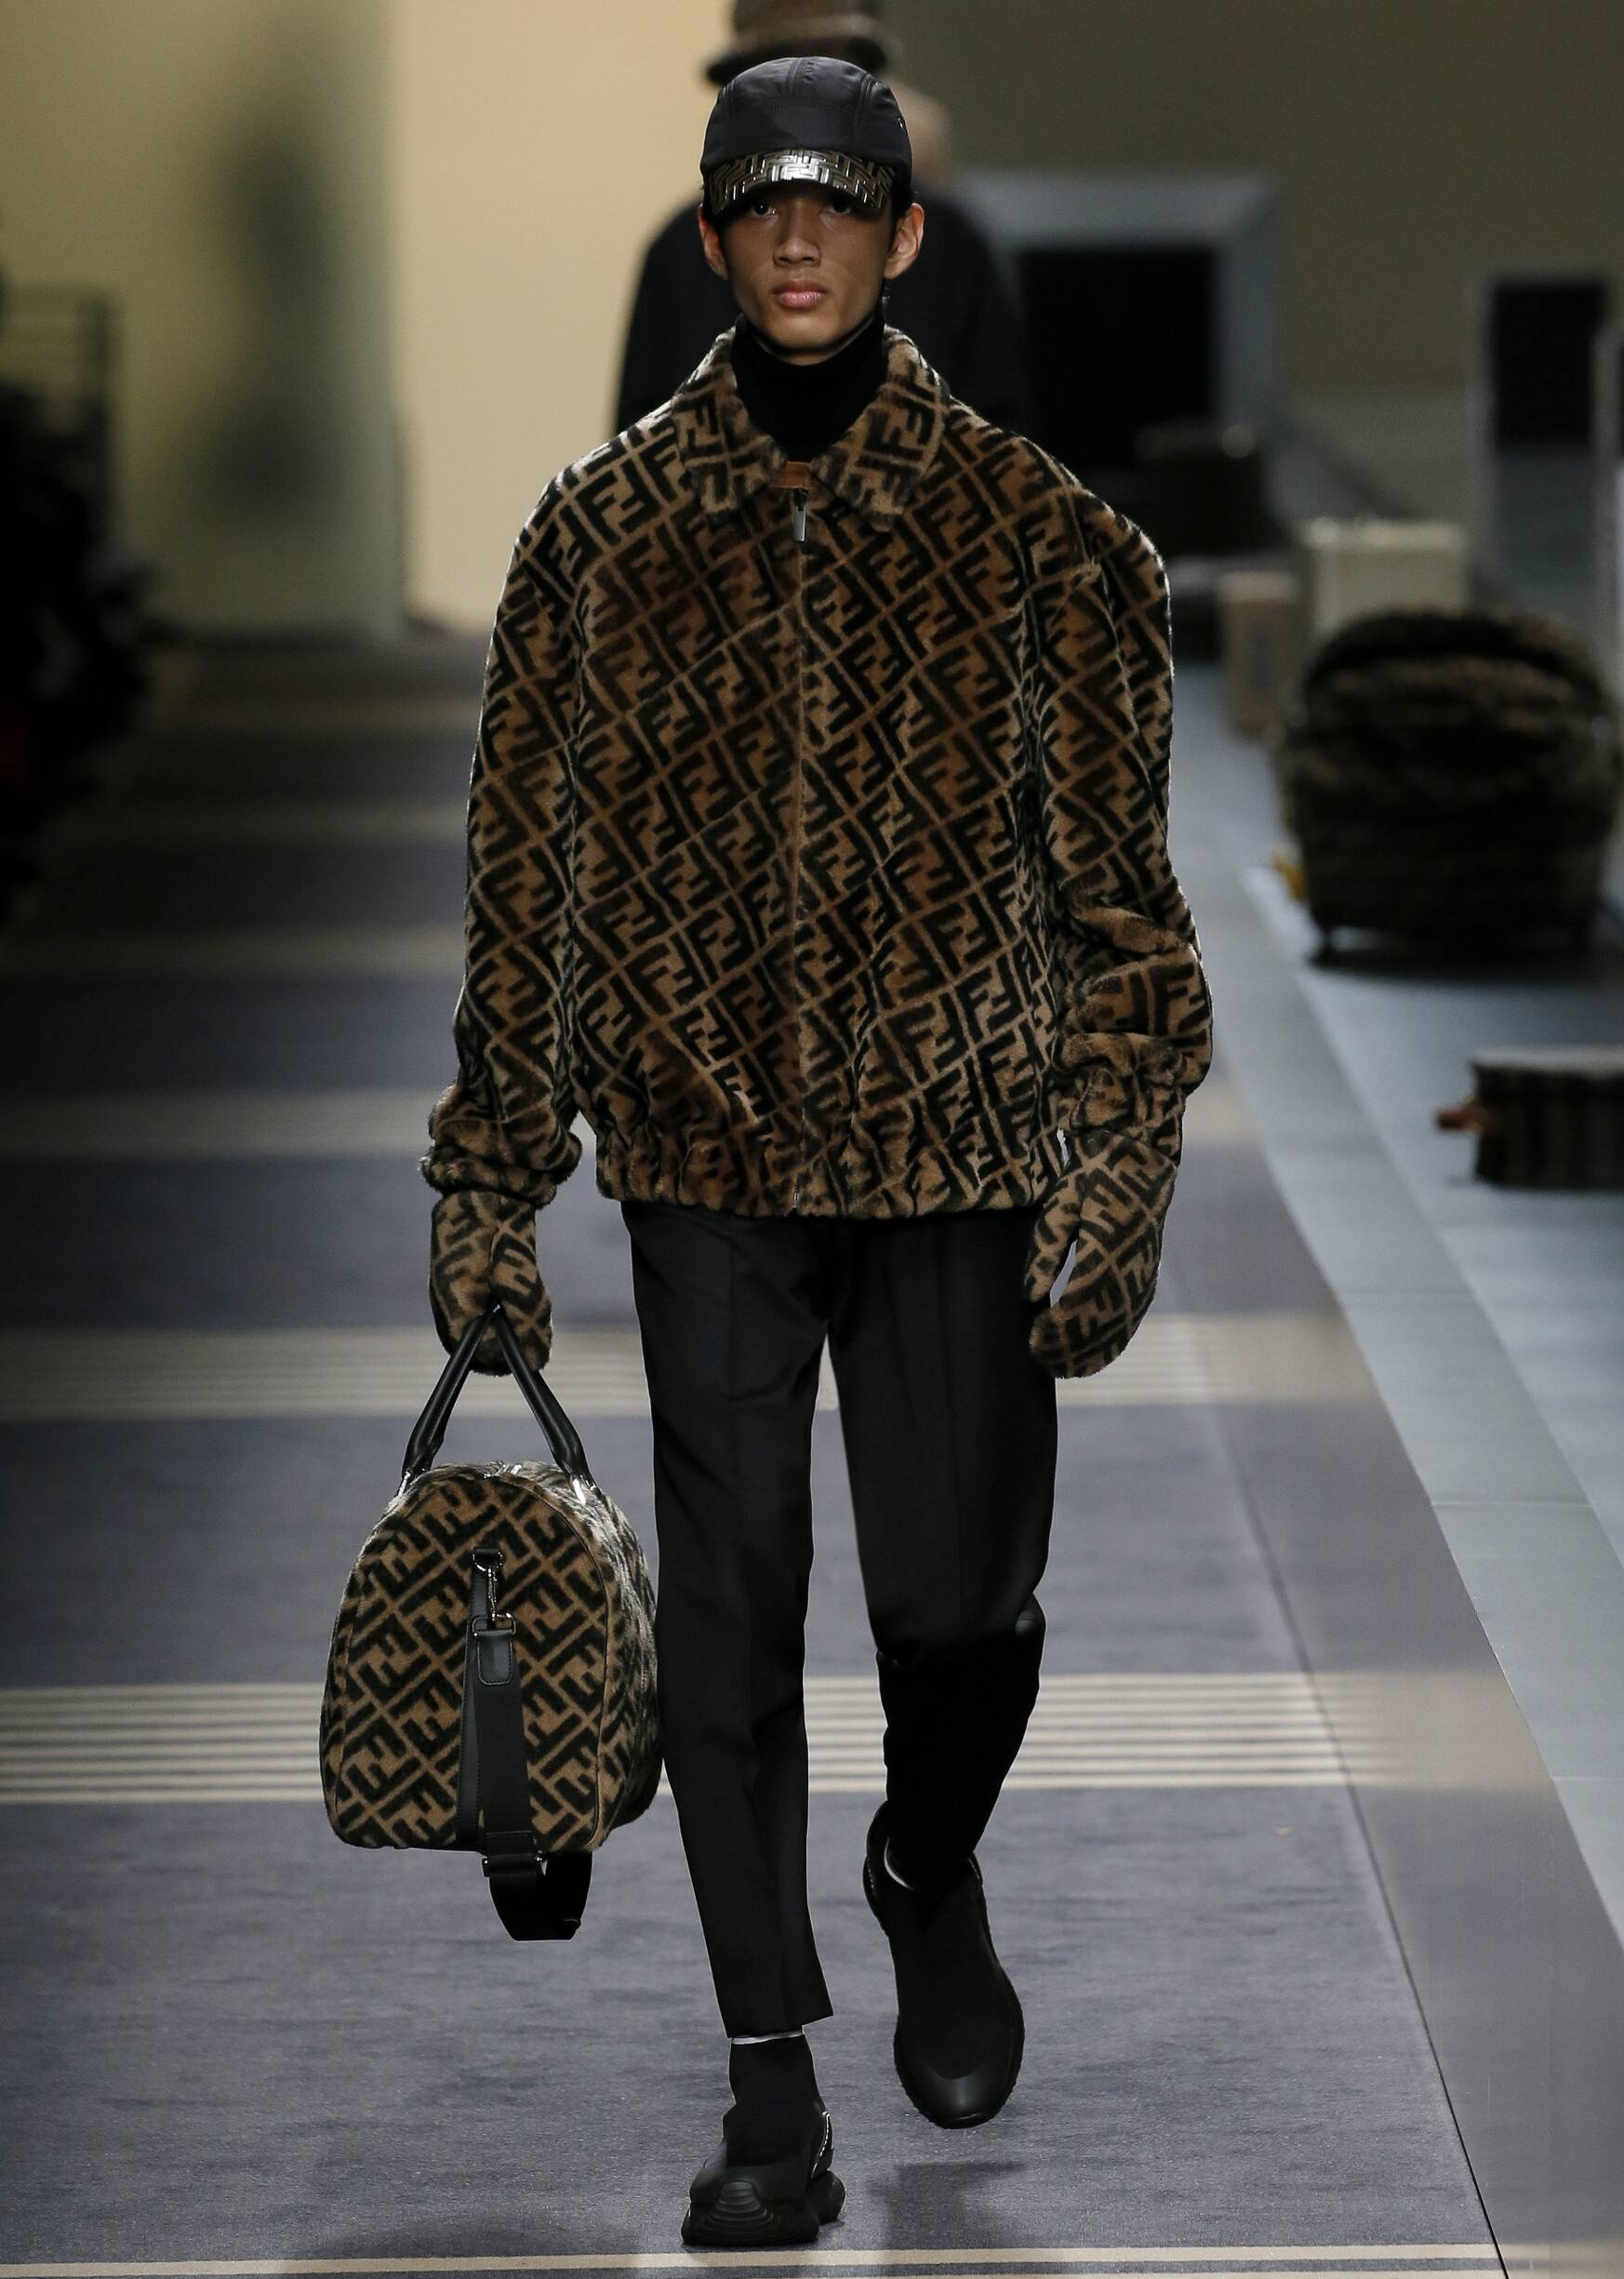 Man FW 2018-19 Fashion Show Fendi